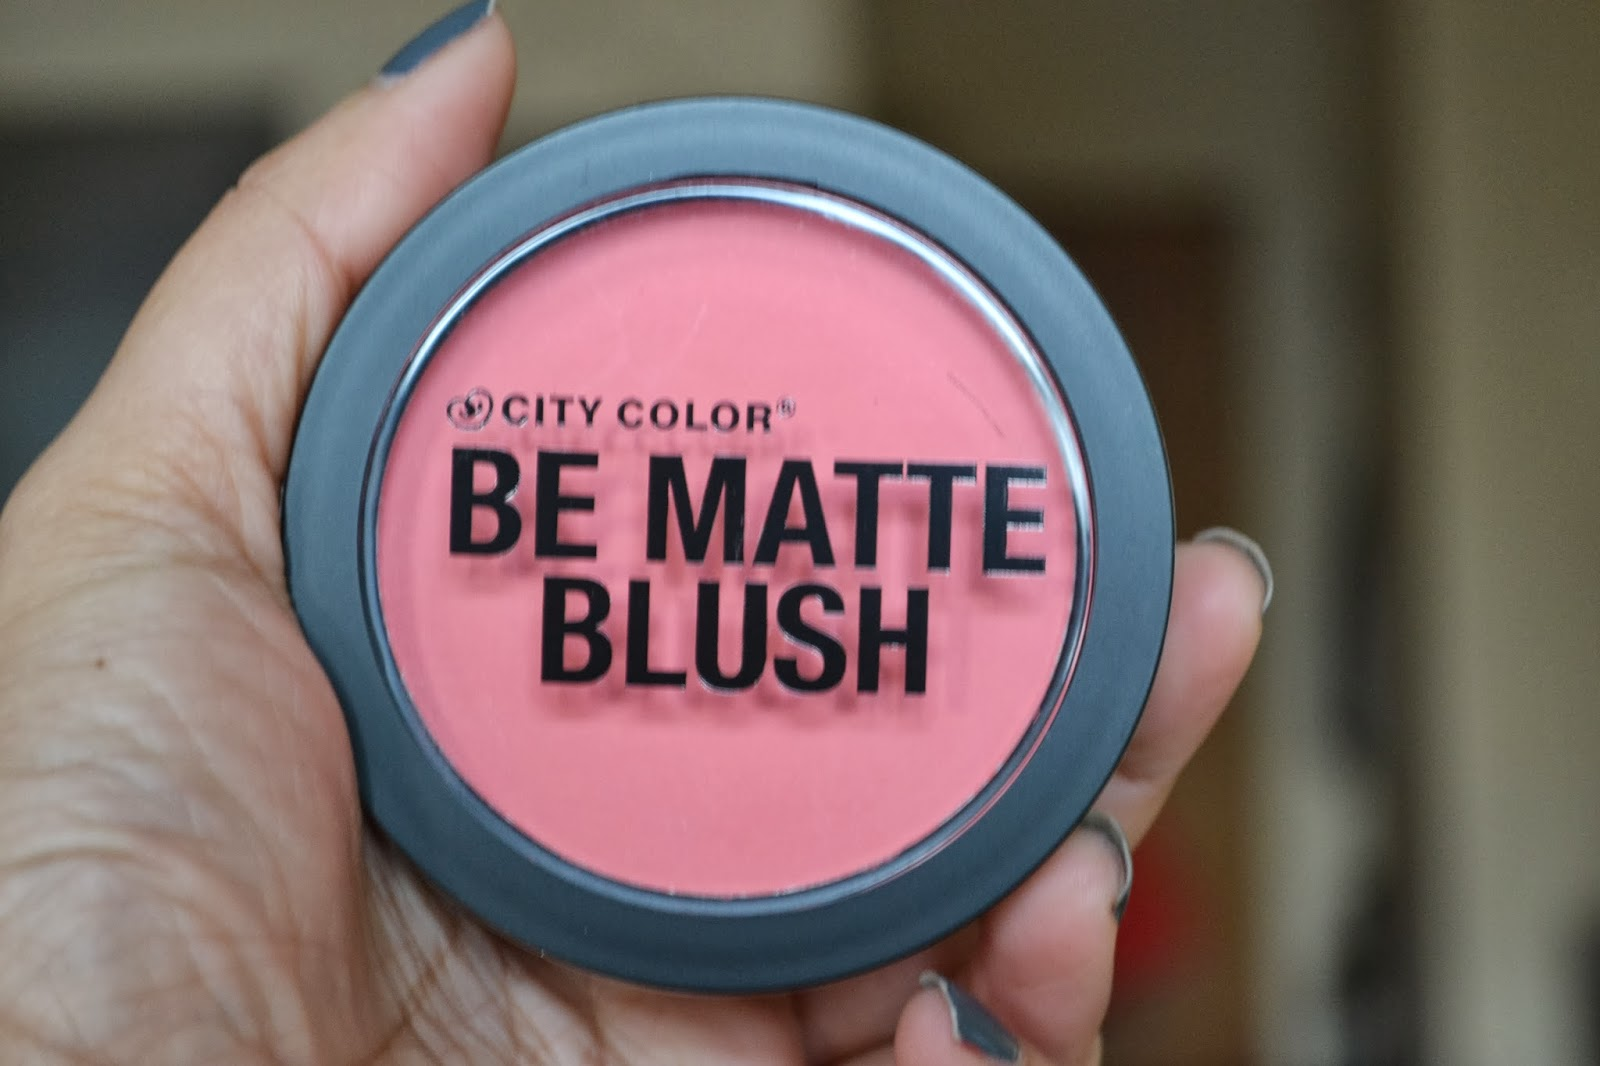 Be Matte Blush from City Color